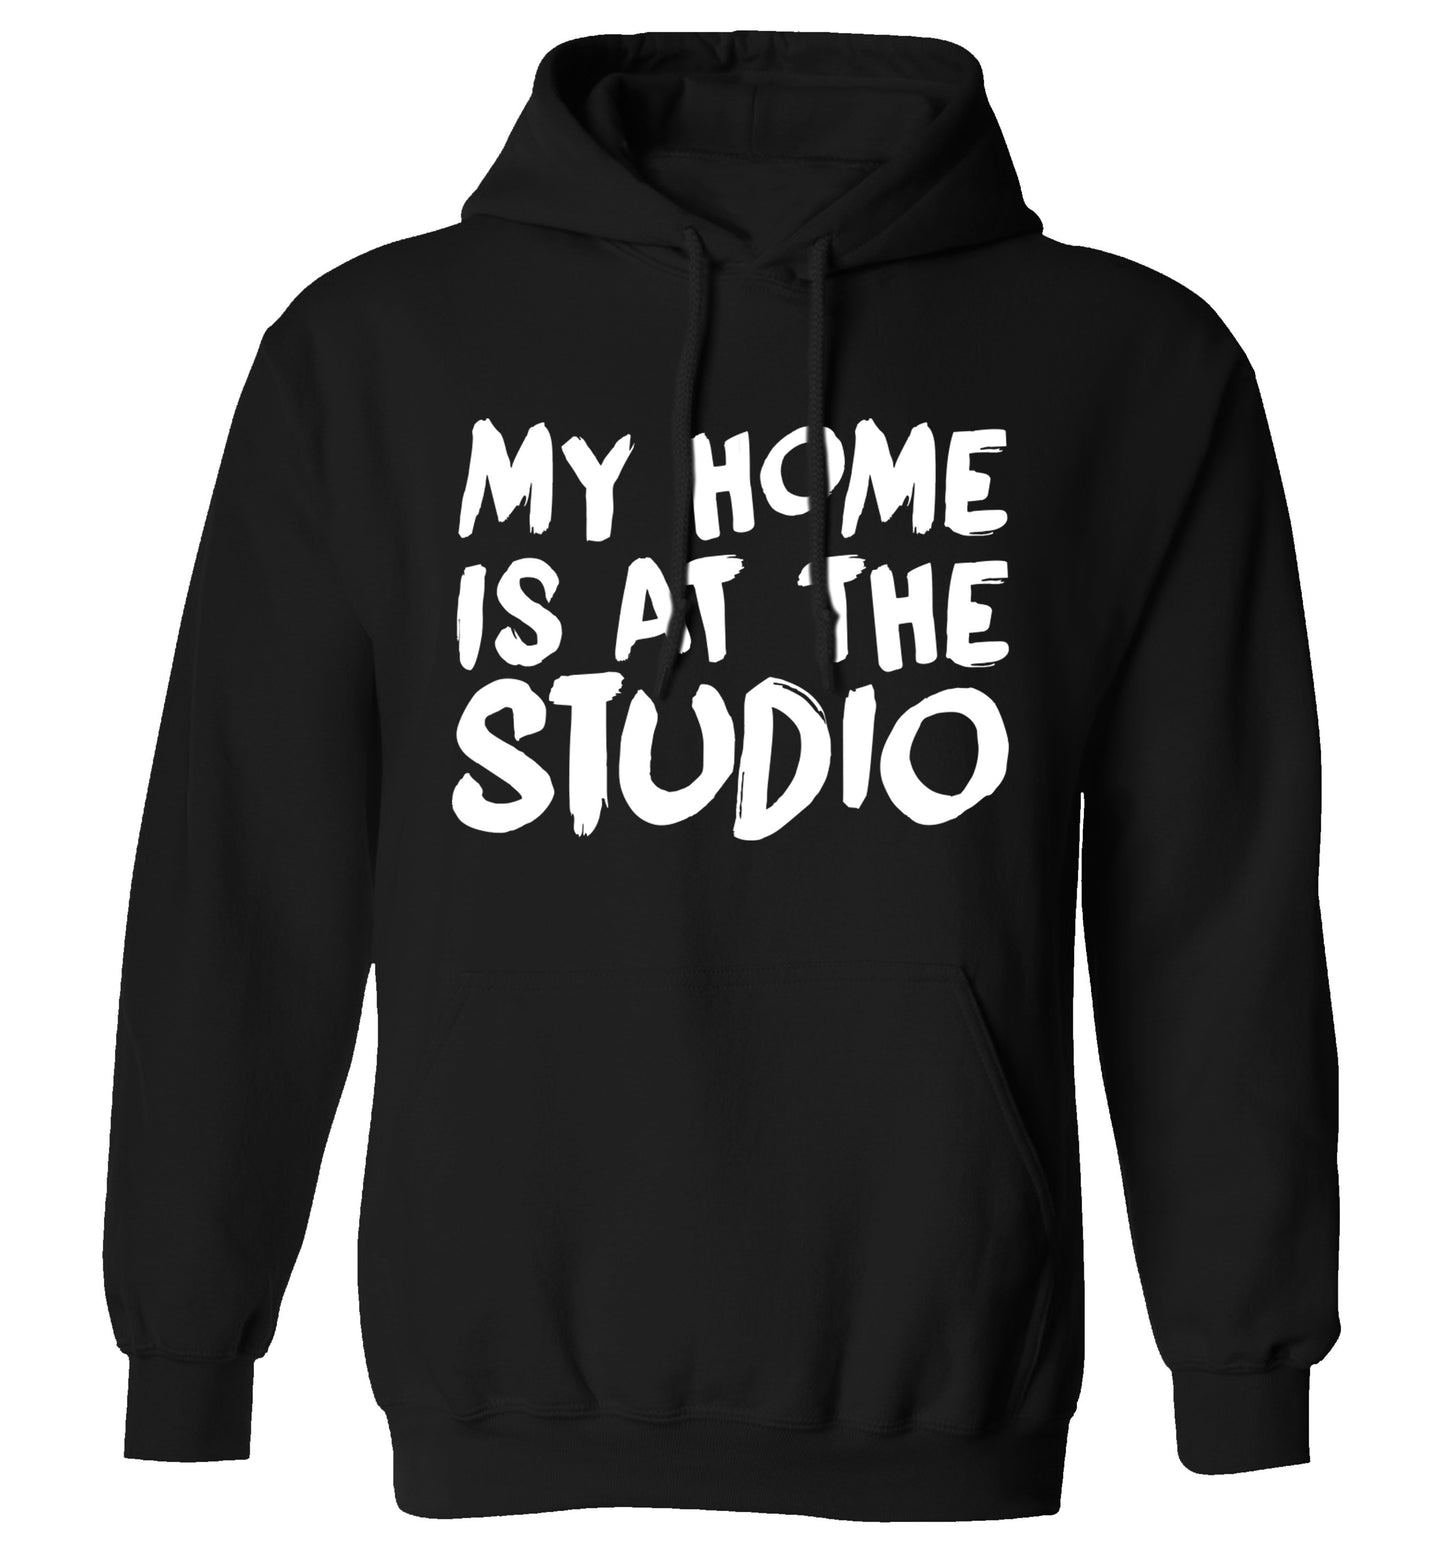 My home is at the studio adults unisex black hoodie 2XL